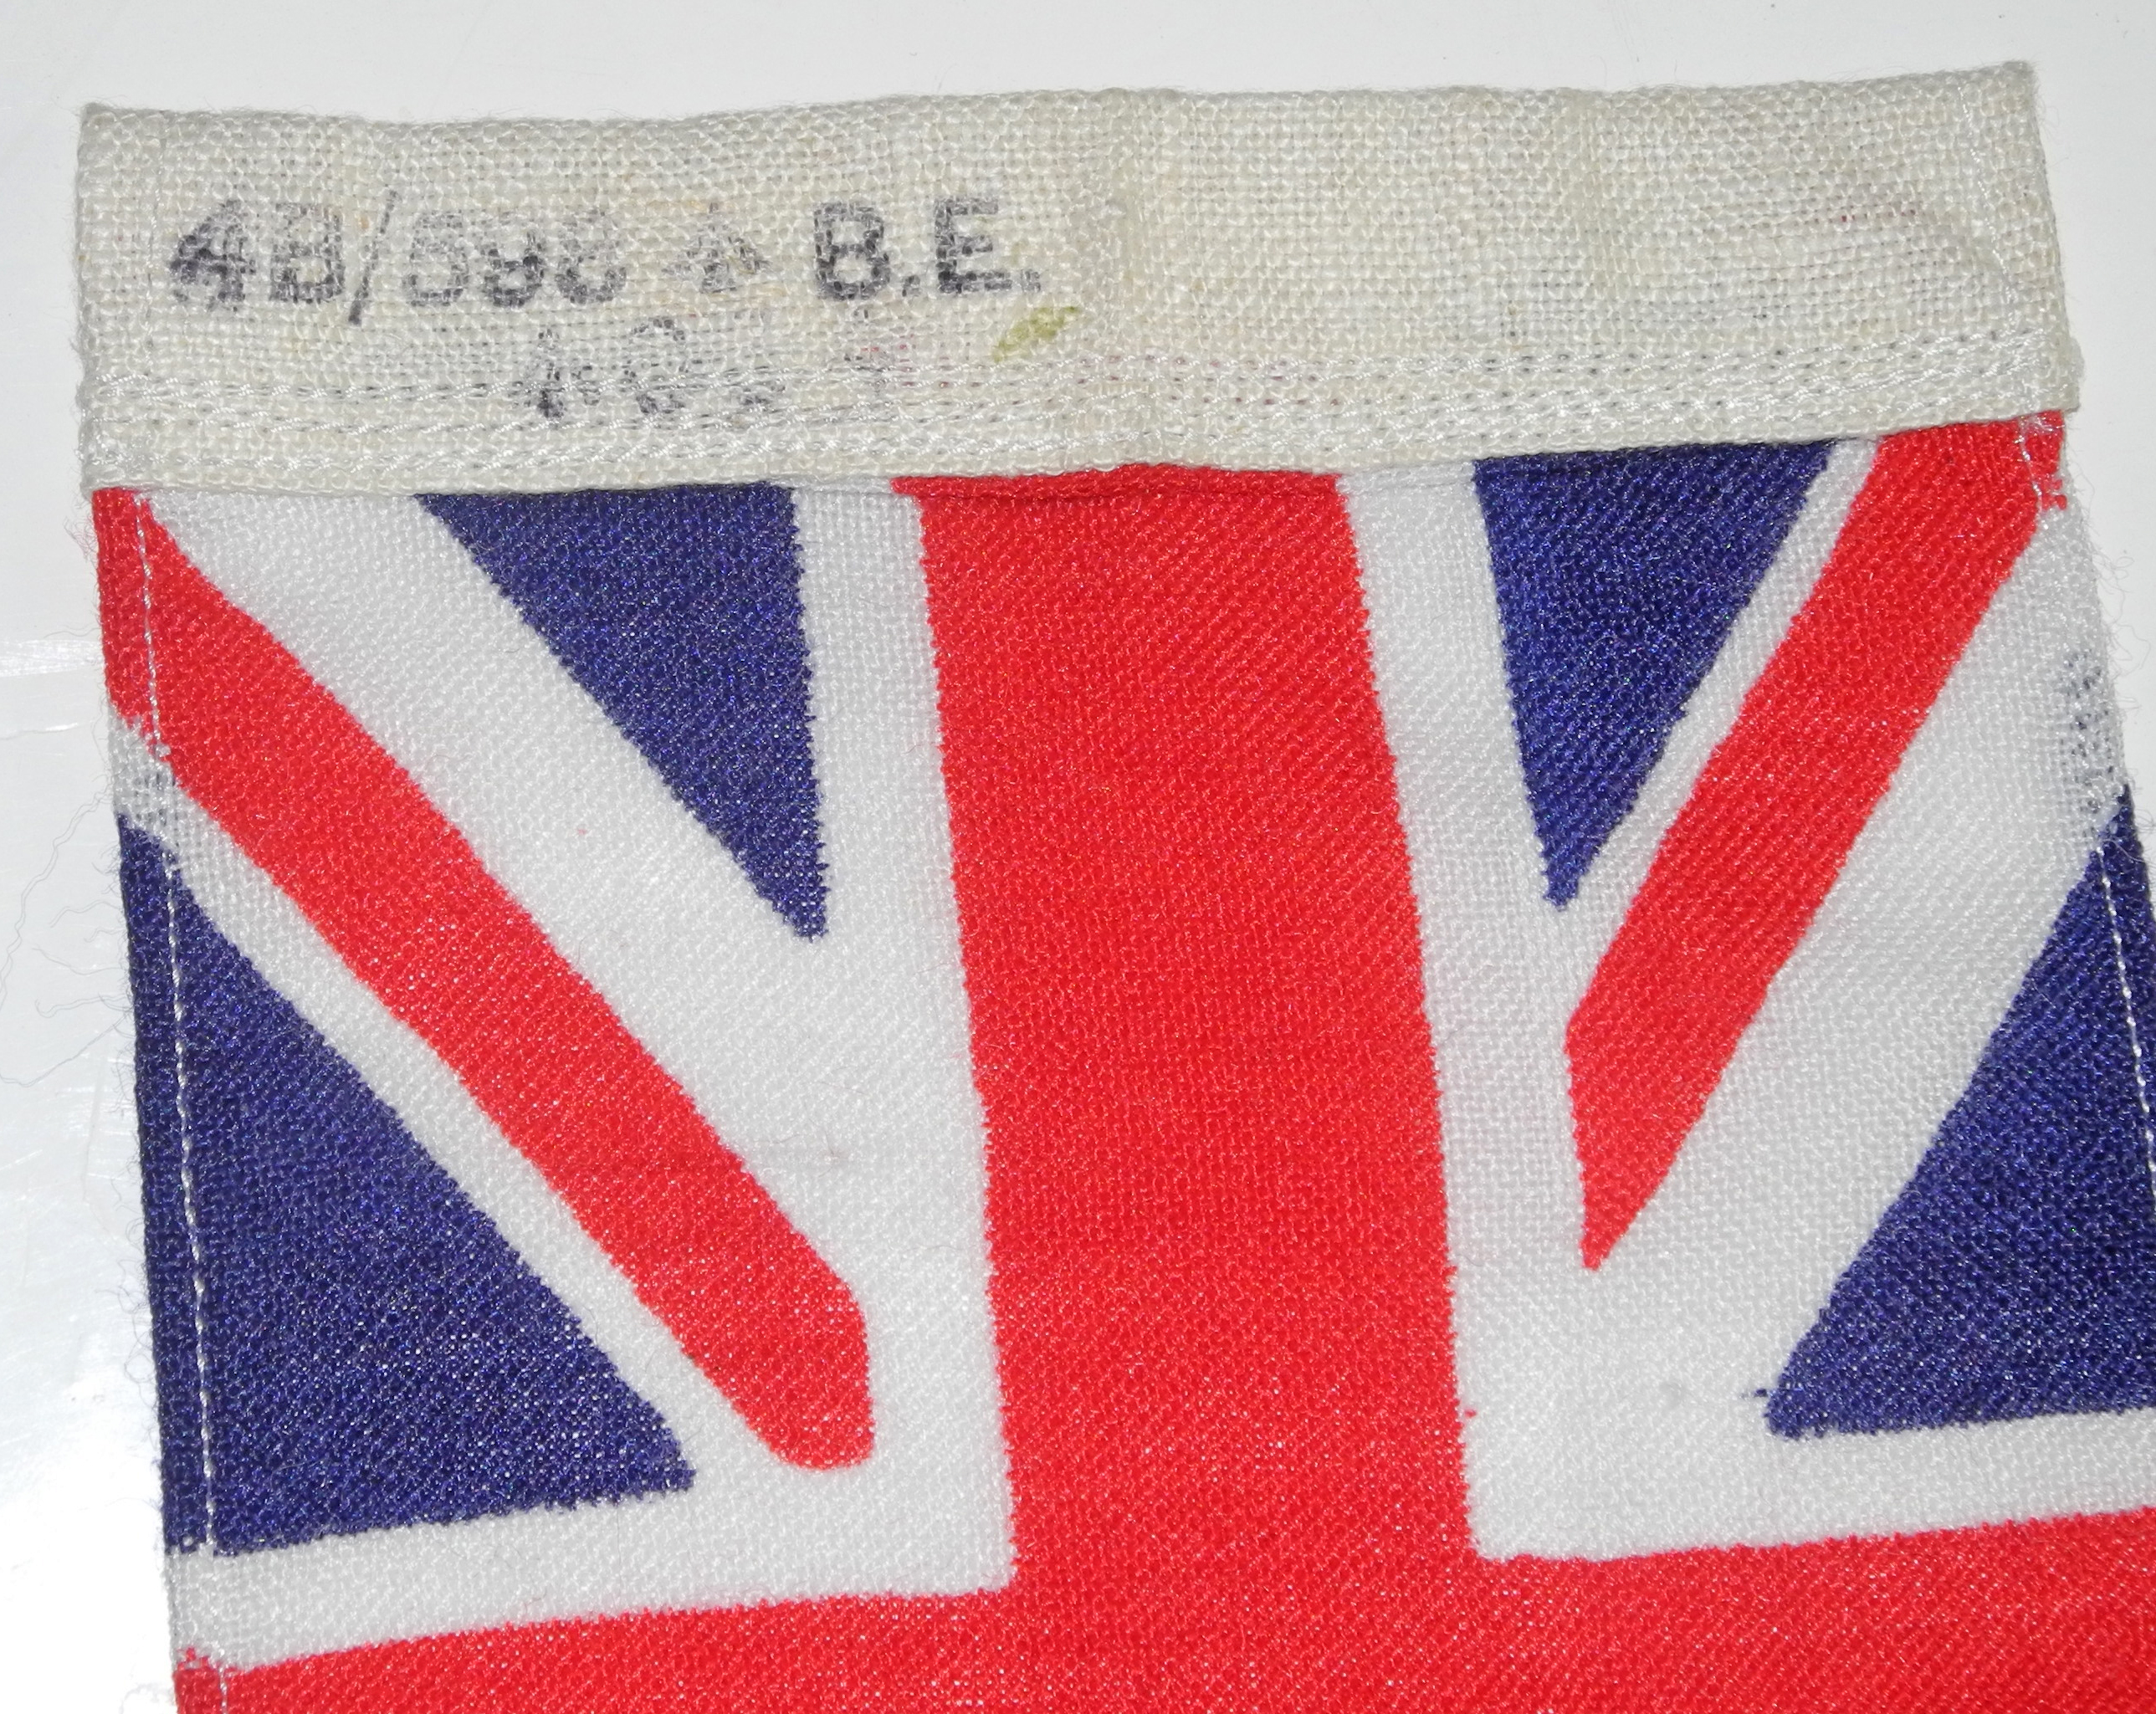 RAF Union Flag from escape kitN4481